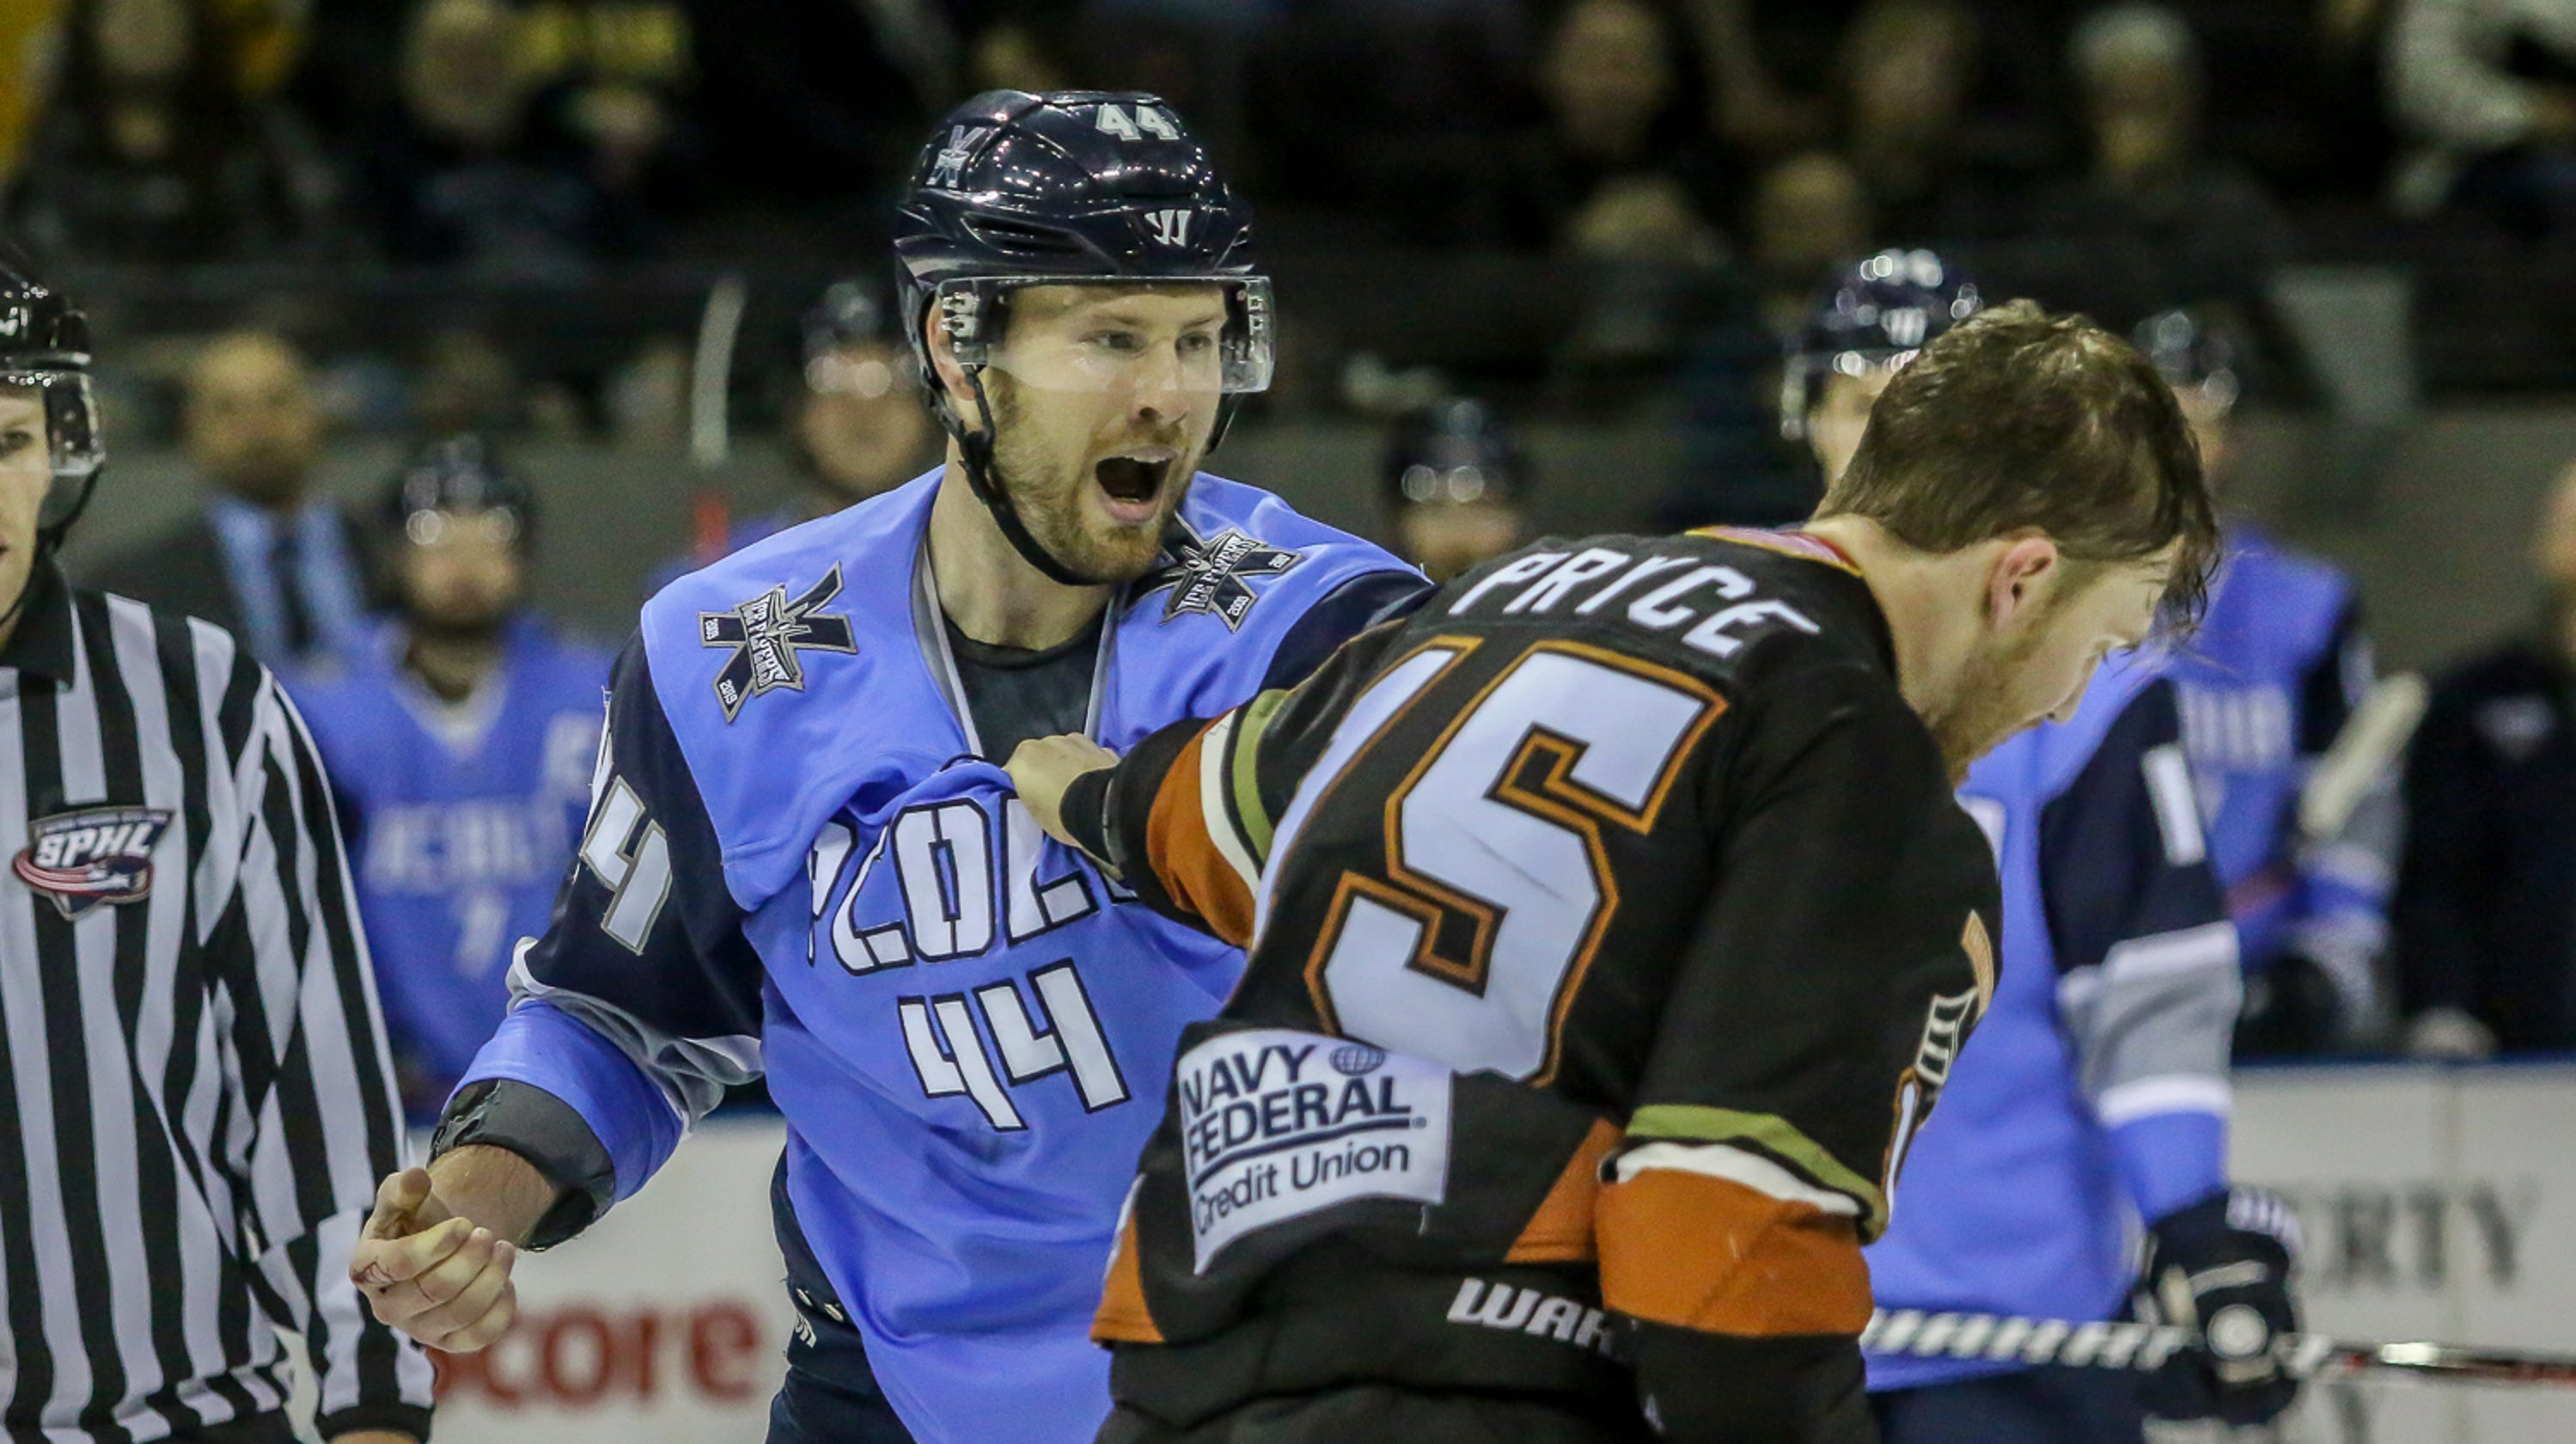 Ice Flyers  kicked in the pants  as scoring woes leave playoffs in question 446fda8f4